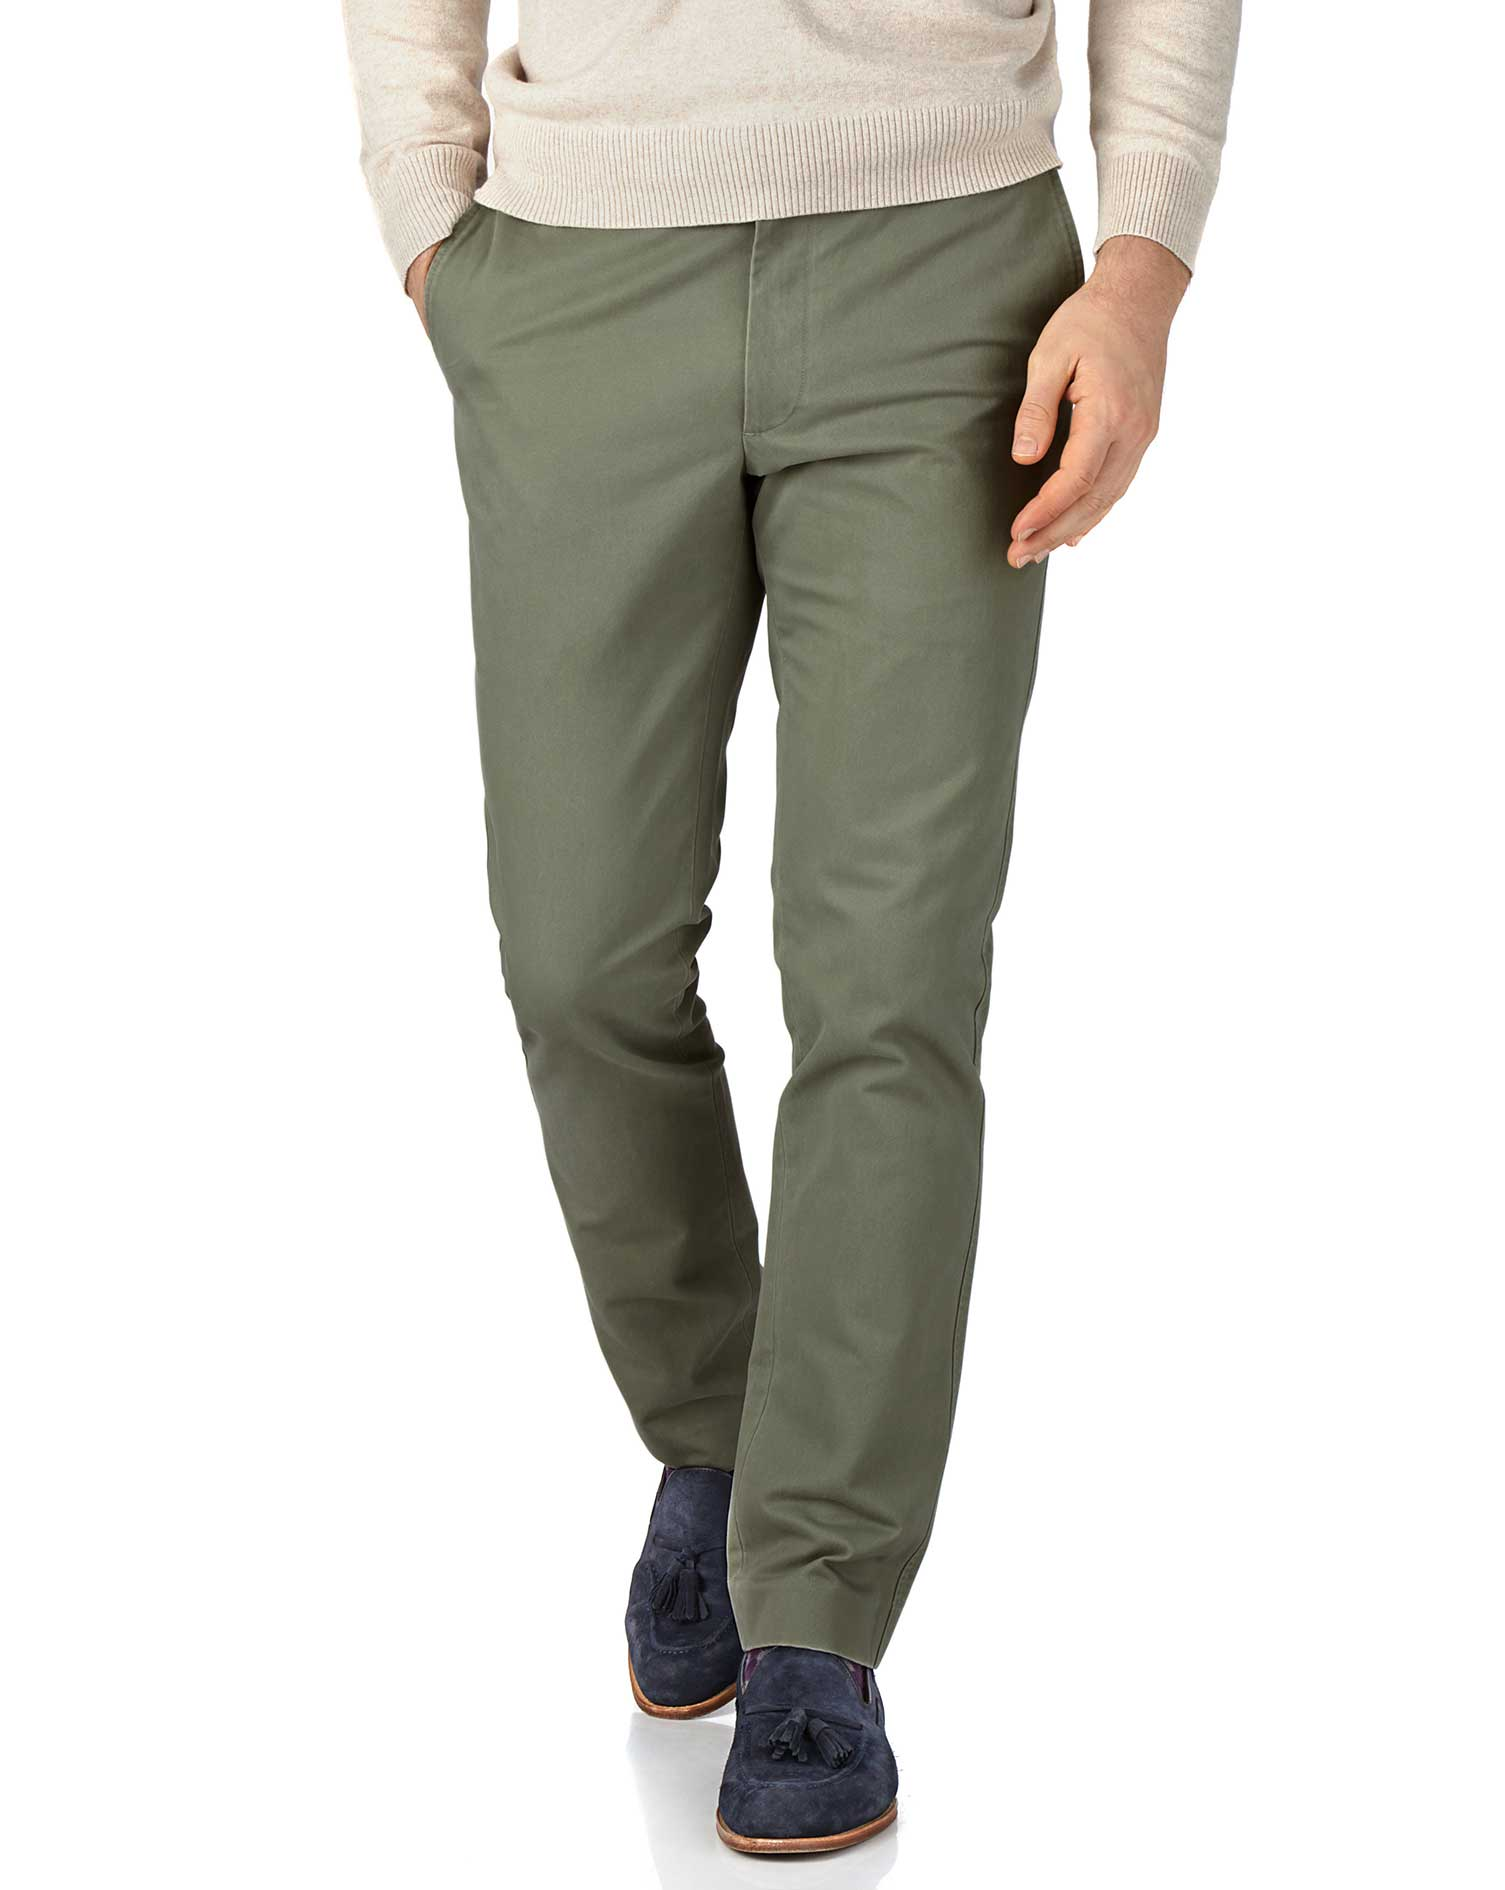 Light Green Extra Slim Fit Flat Front Cotton Chino Trousers Size W30 L38 by Charles Tyrwhitt